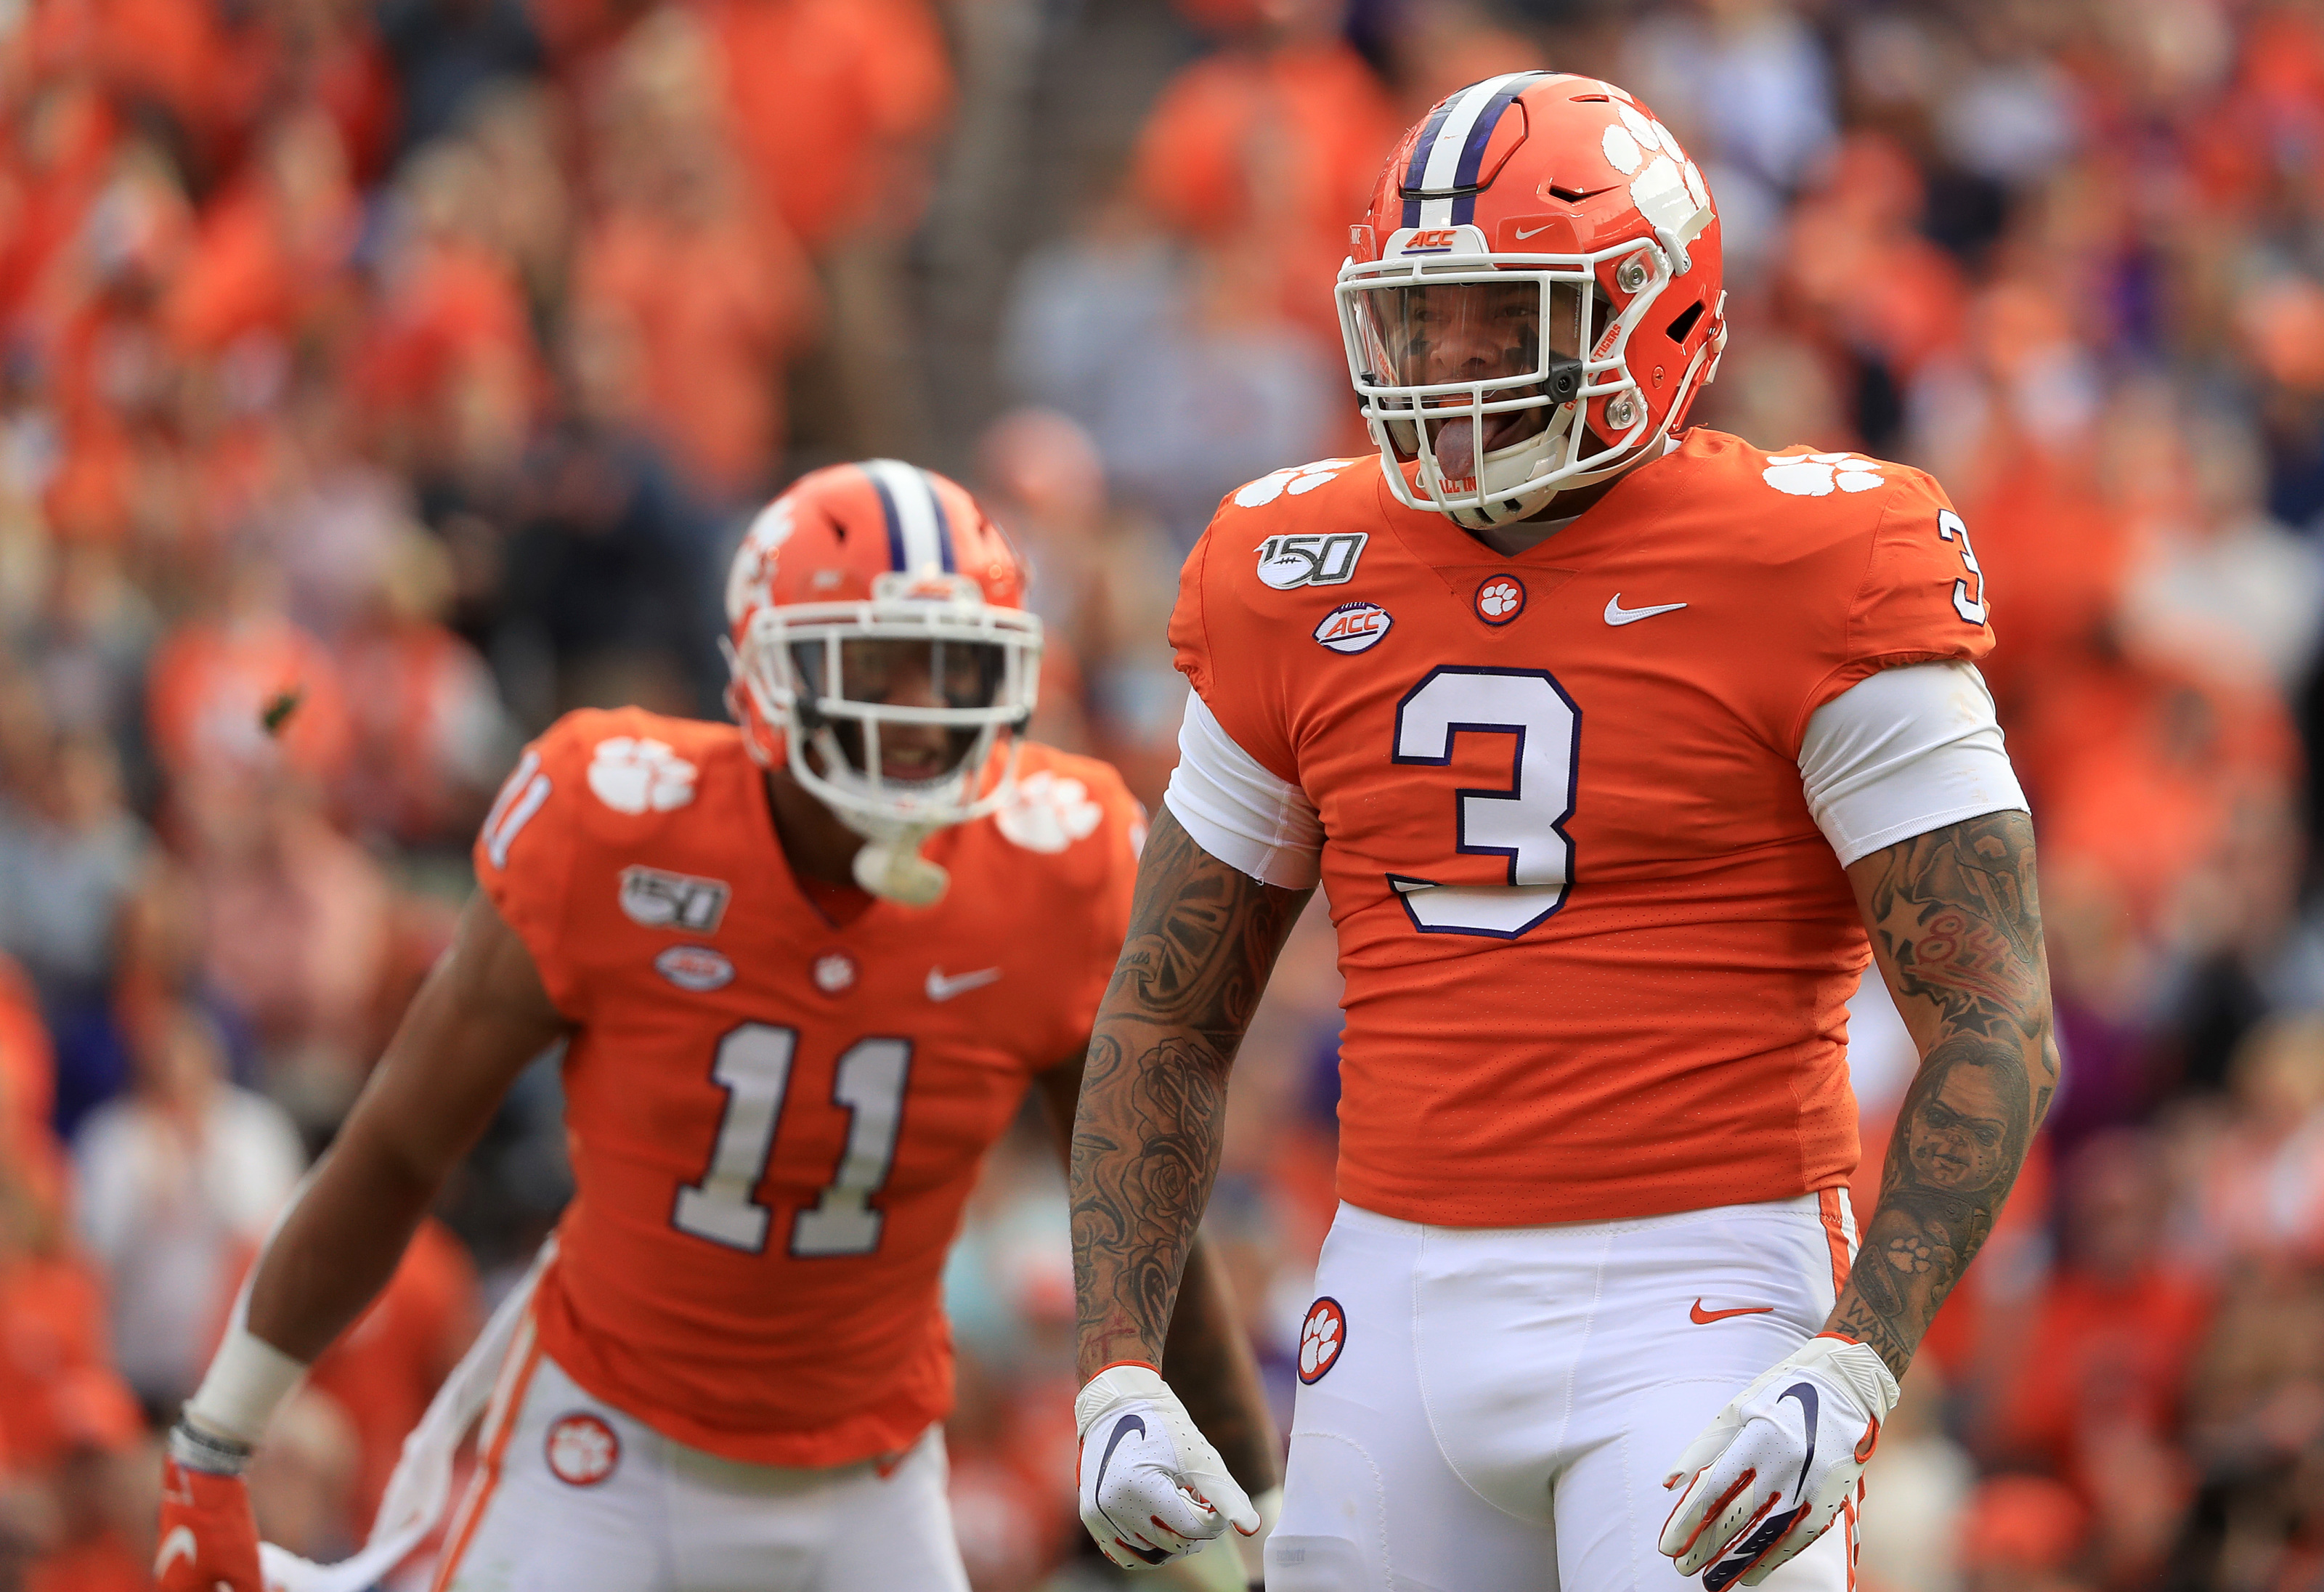 clemson forest wake football college isaiah simmons rankings studs draft depth power defensive line duds victory fulton kristian week university